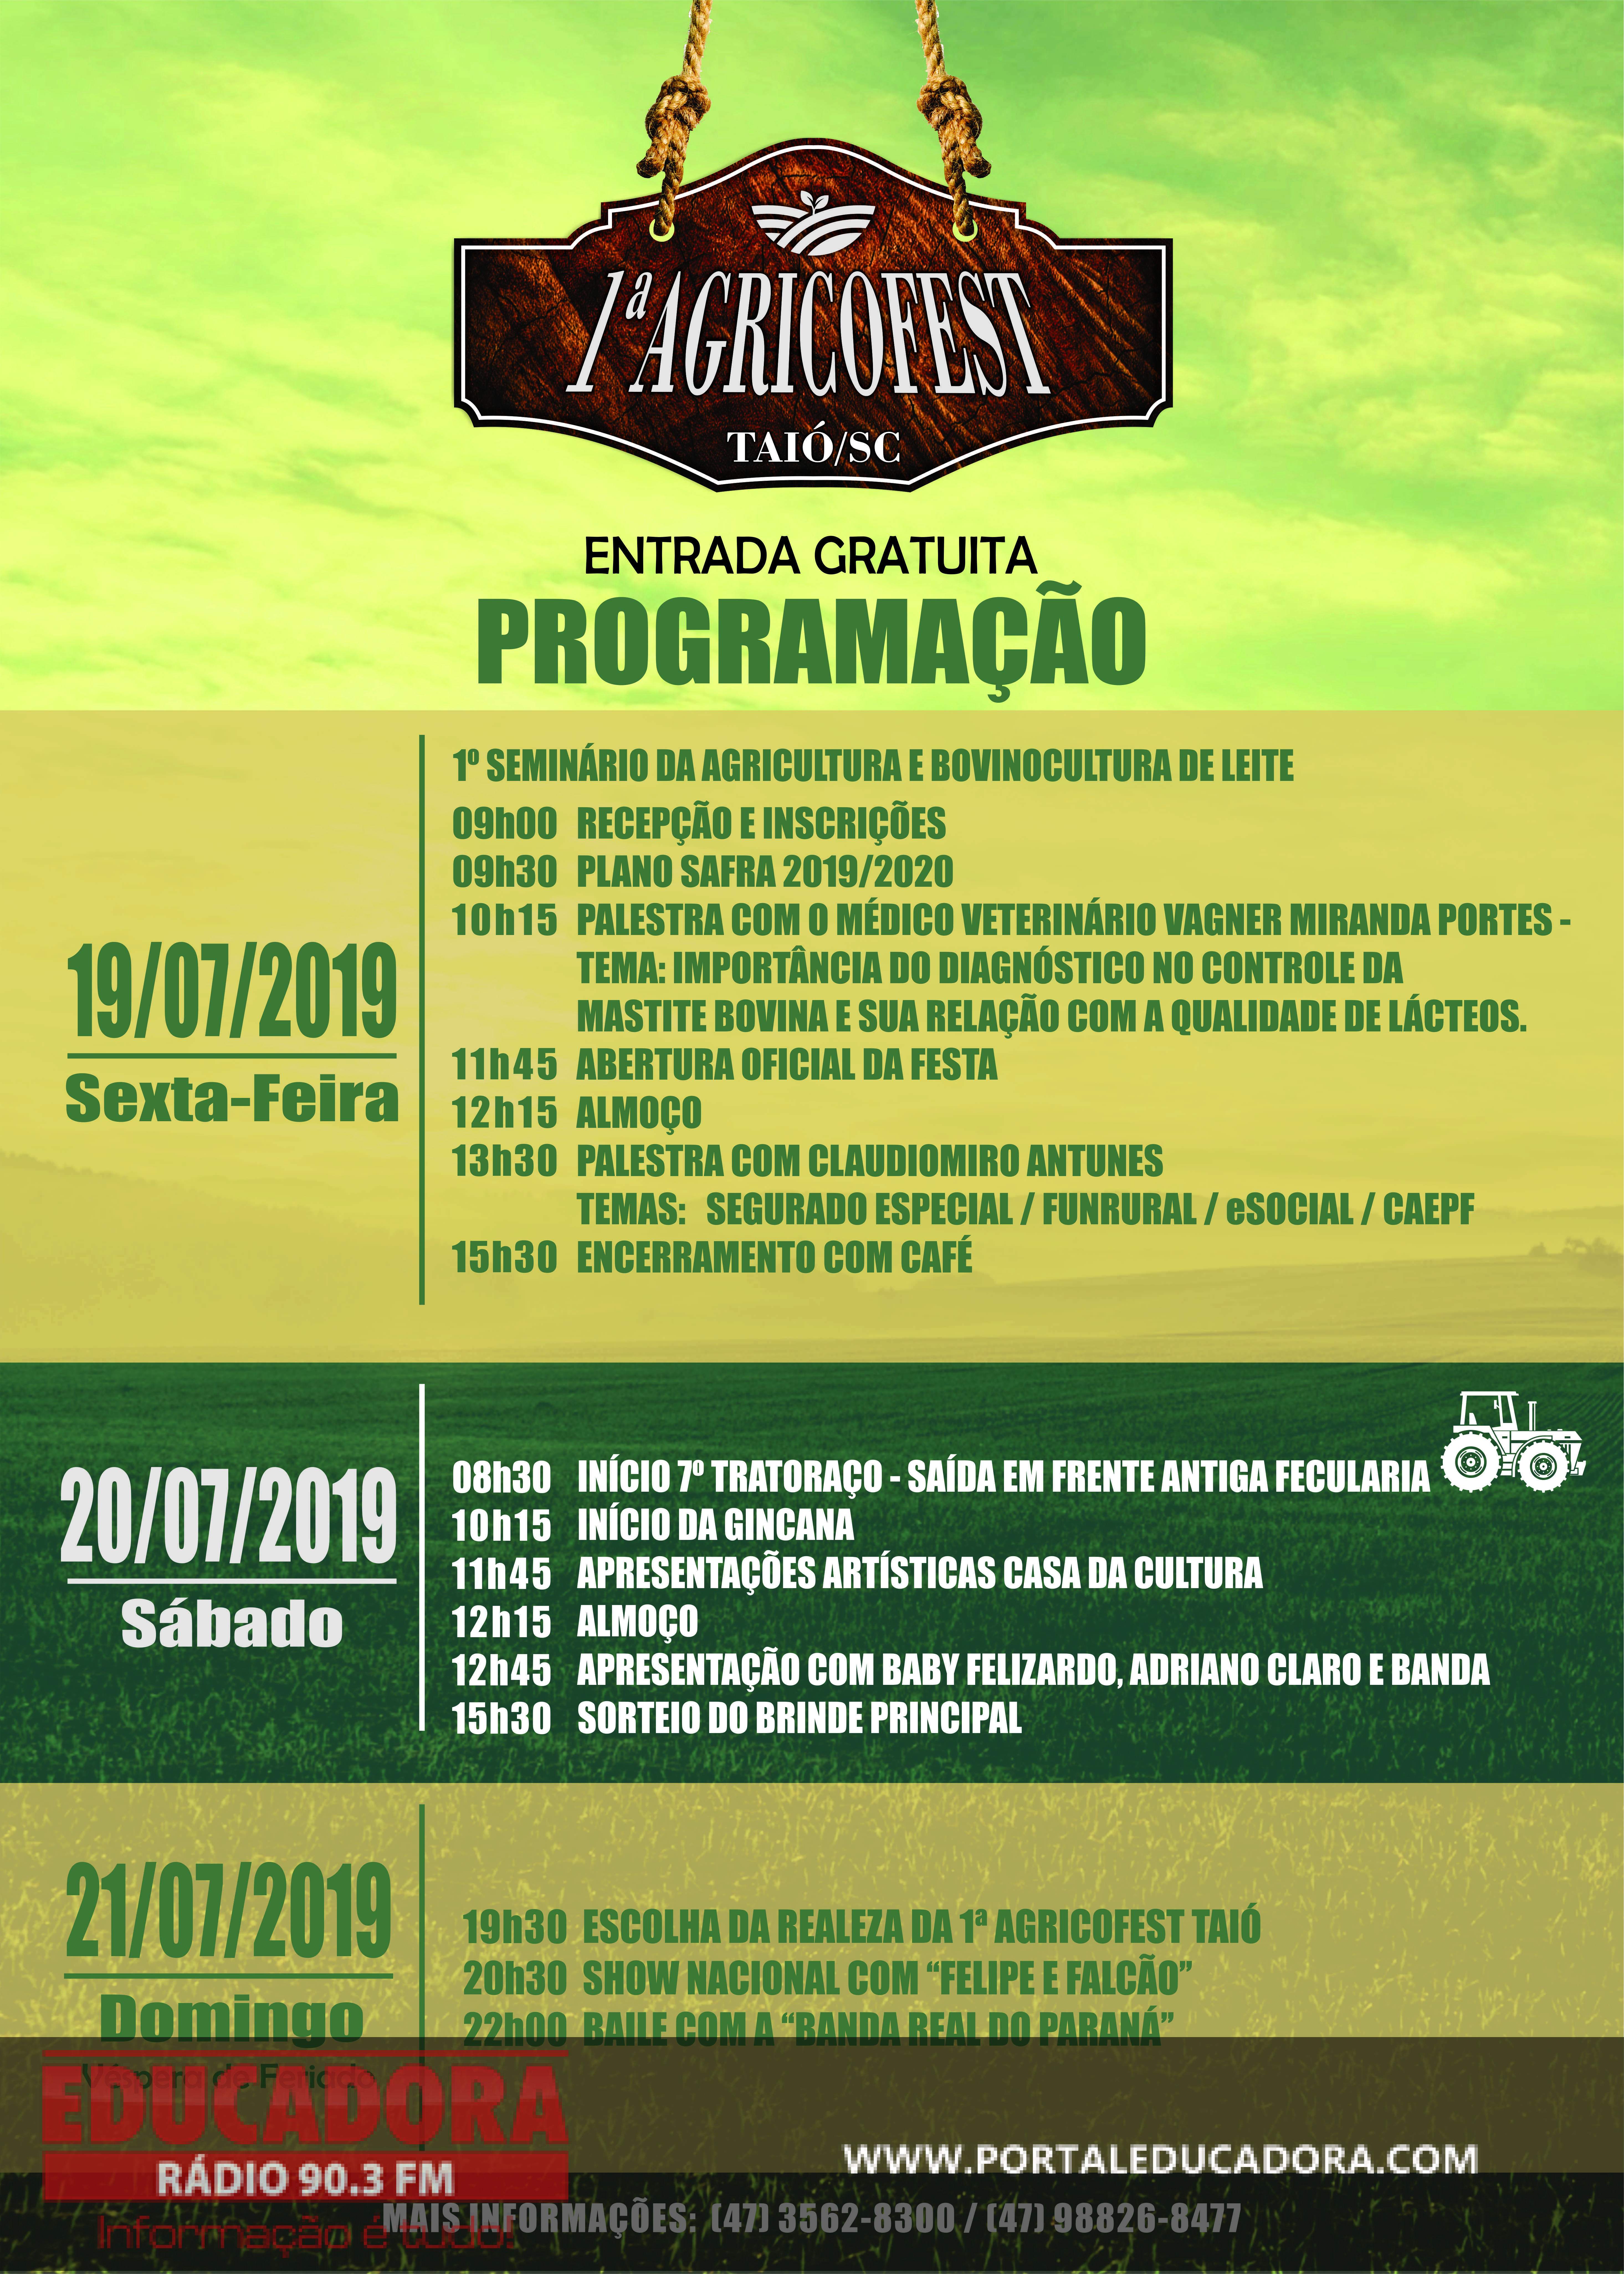 Verso Agricofest